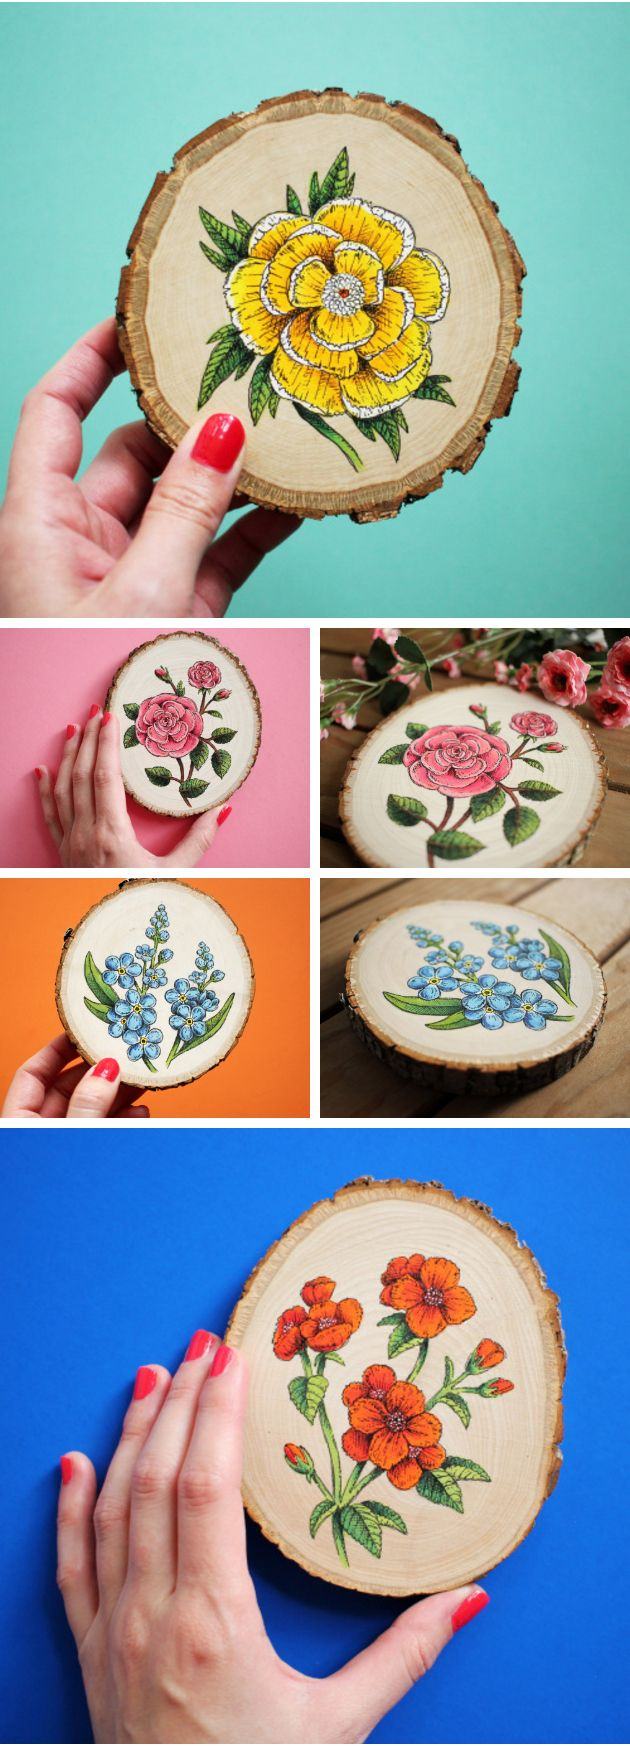 Etching-Inspired Flowers Painted on Wood Slices